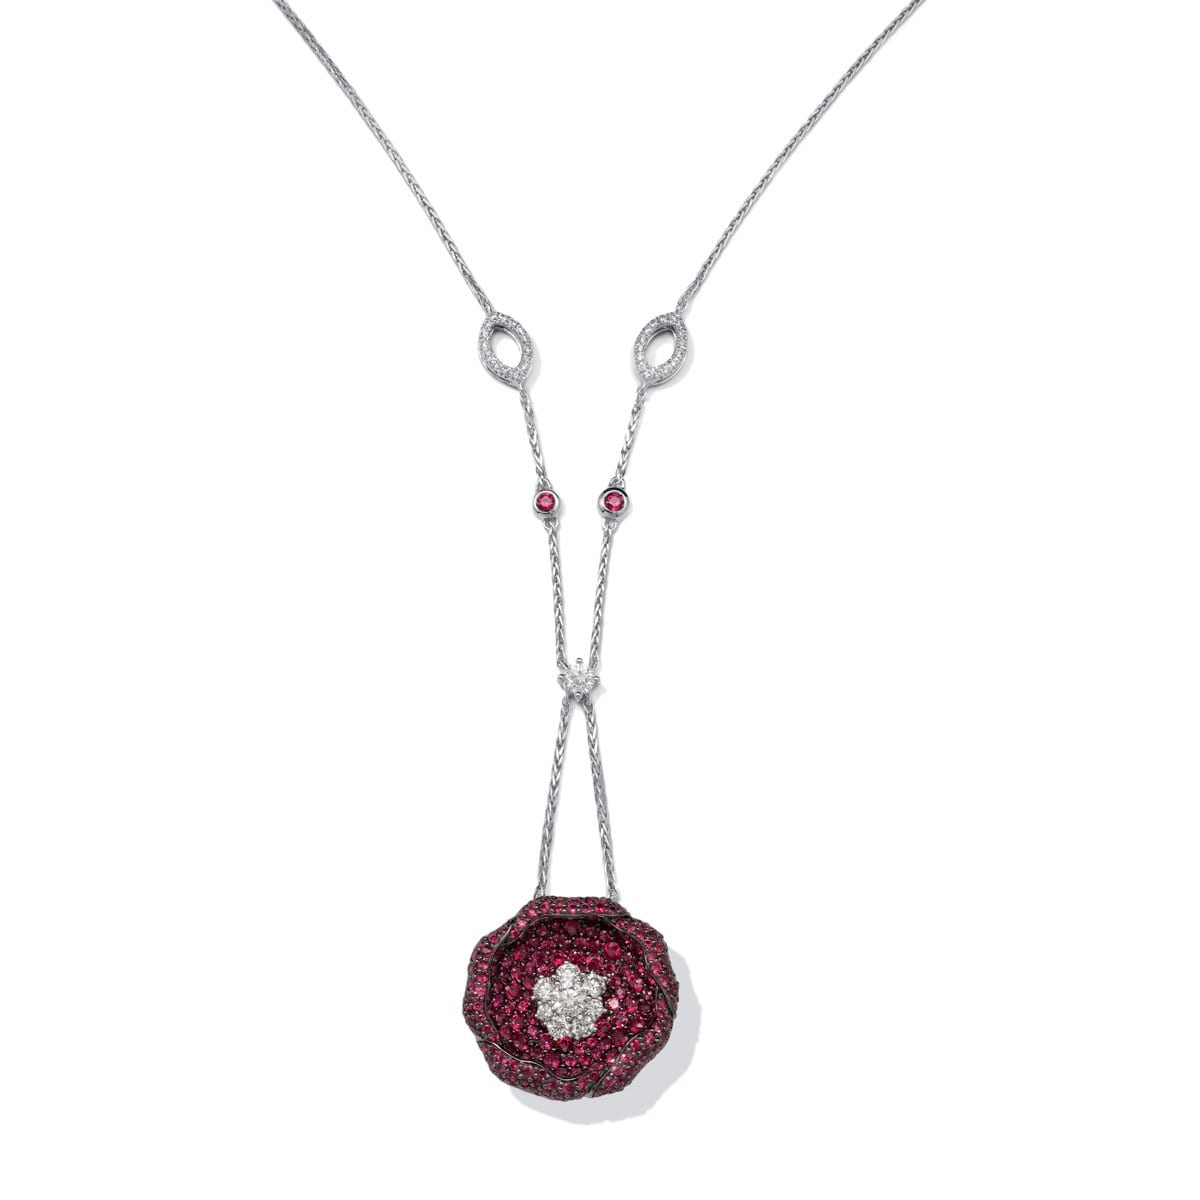 SAKURA Necklace - STENZHORN JEWELLERY